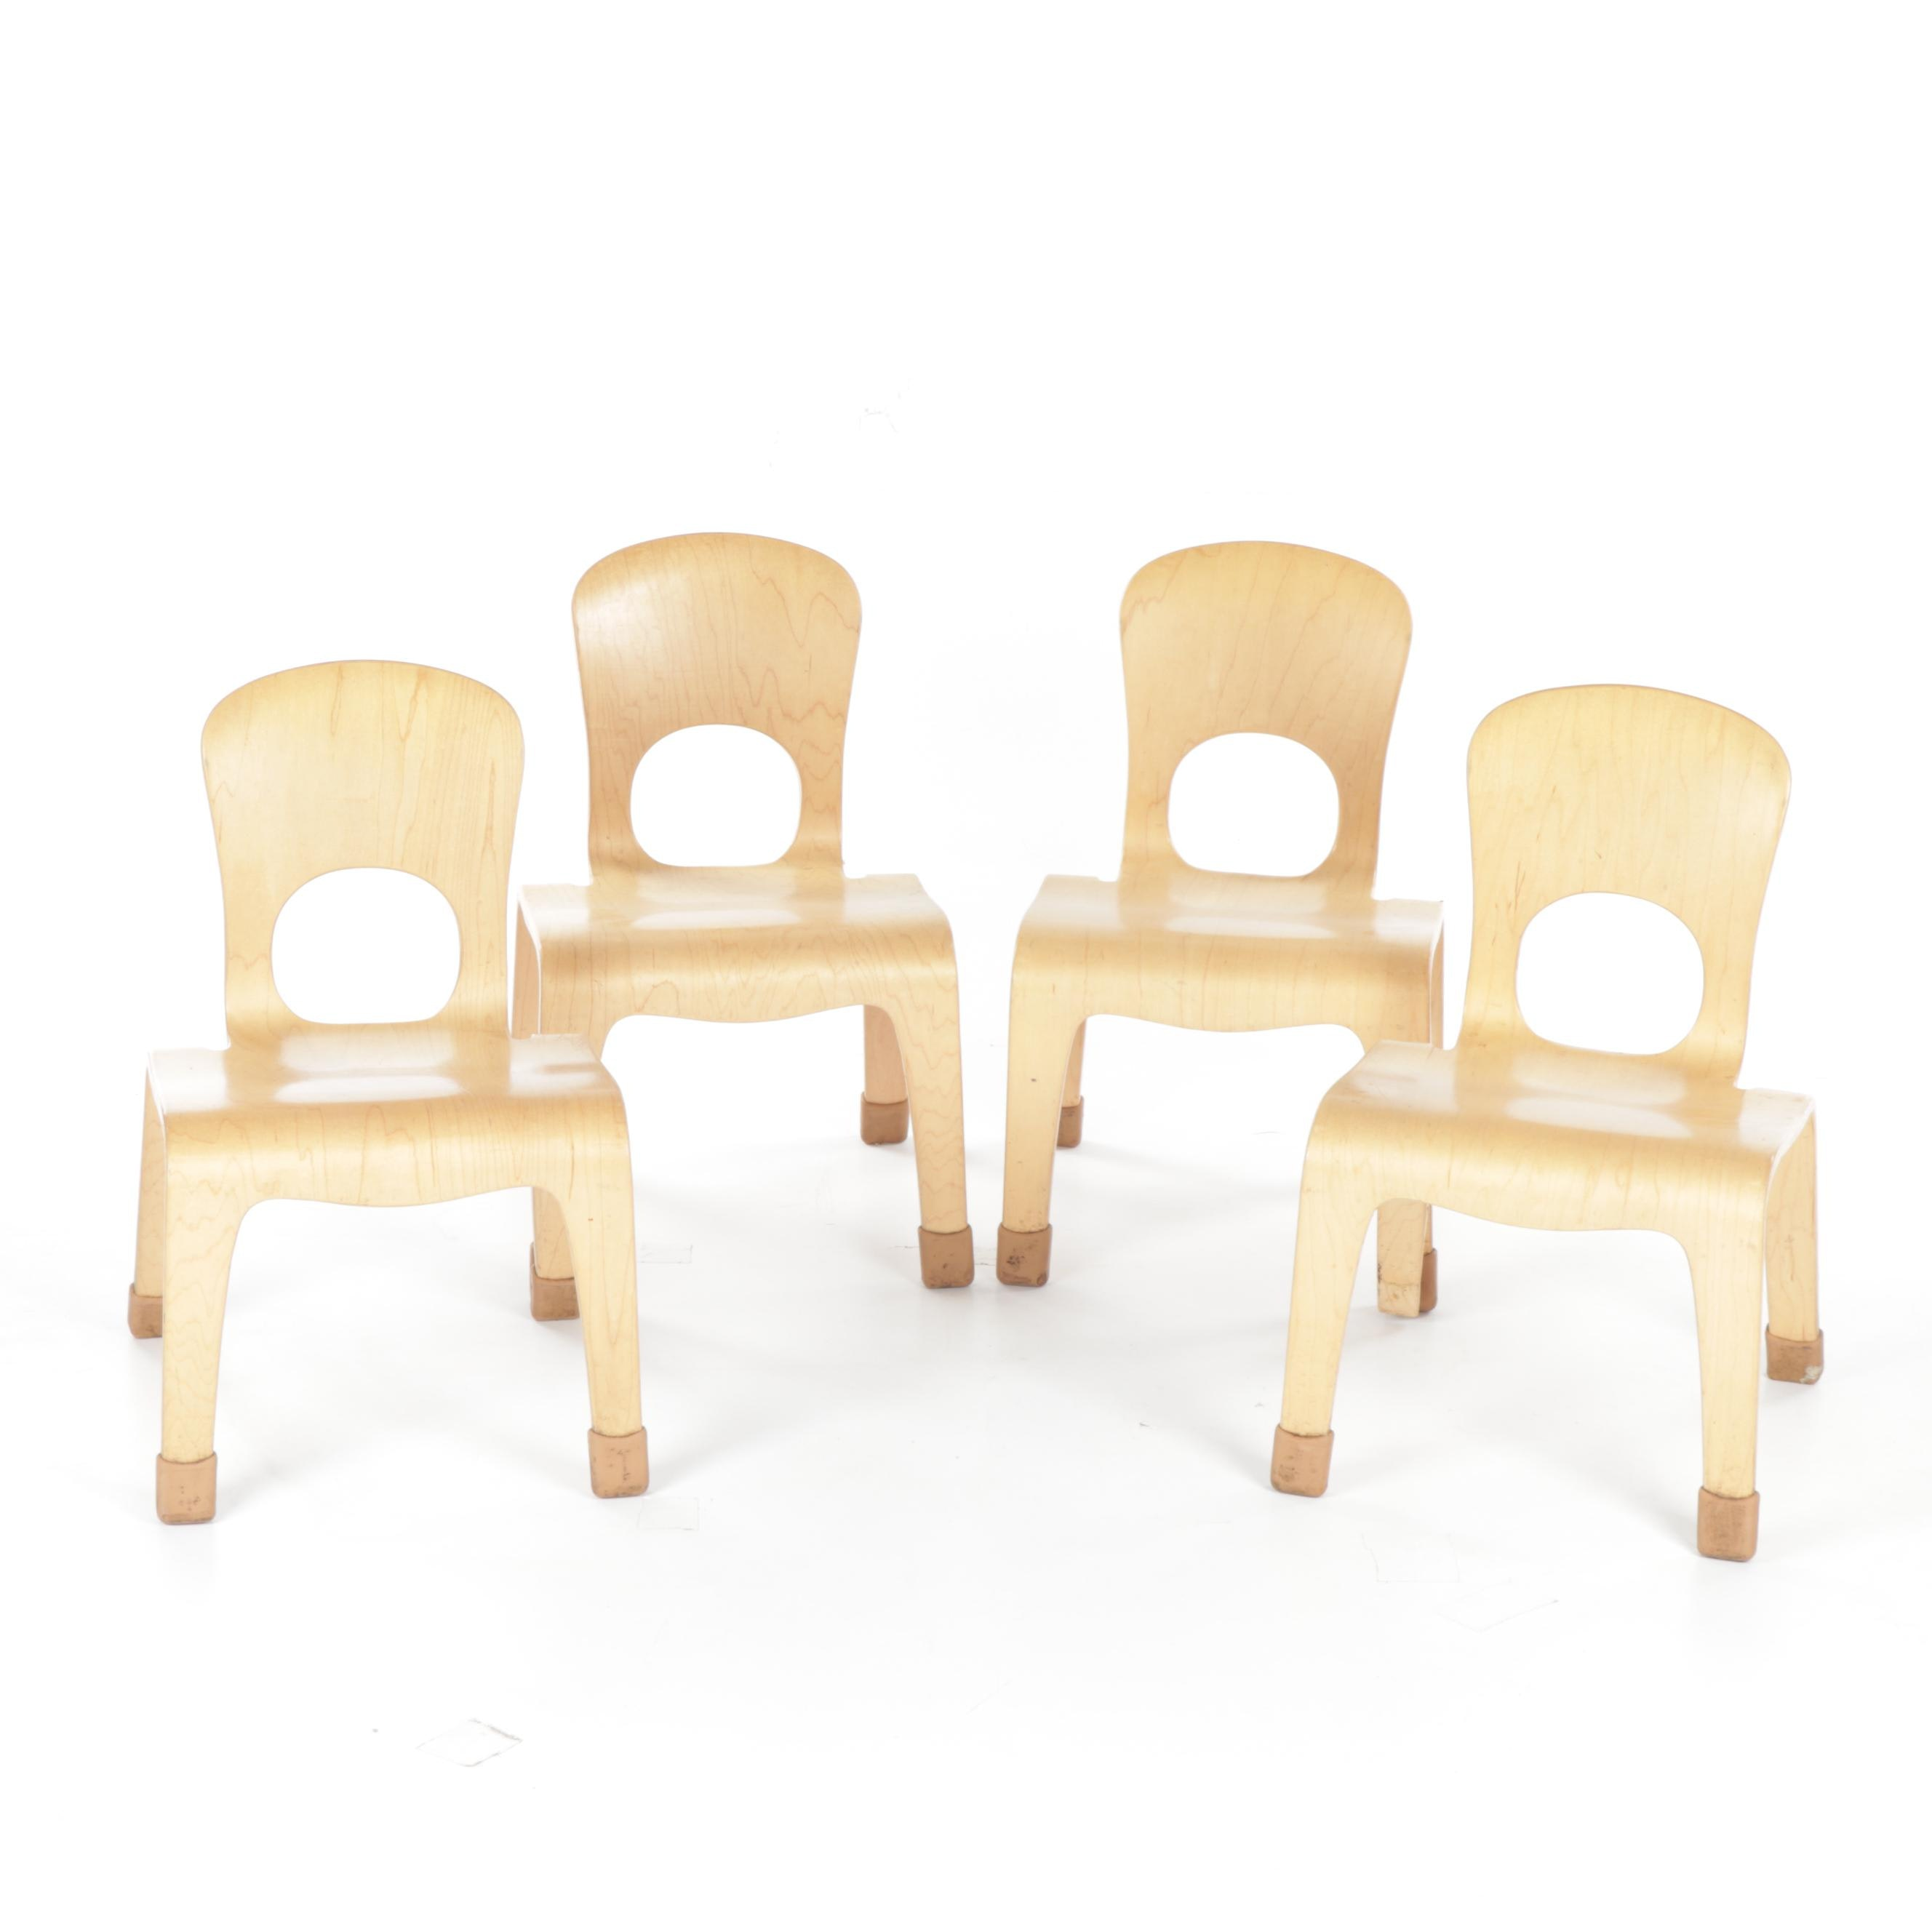 Community Playthings Wooden Stacking Children's Chairs